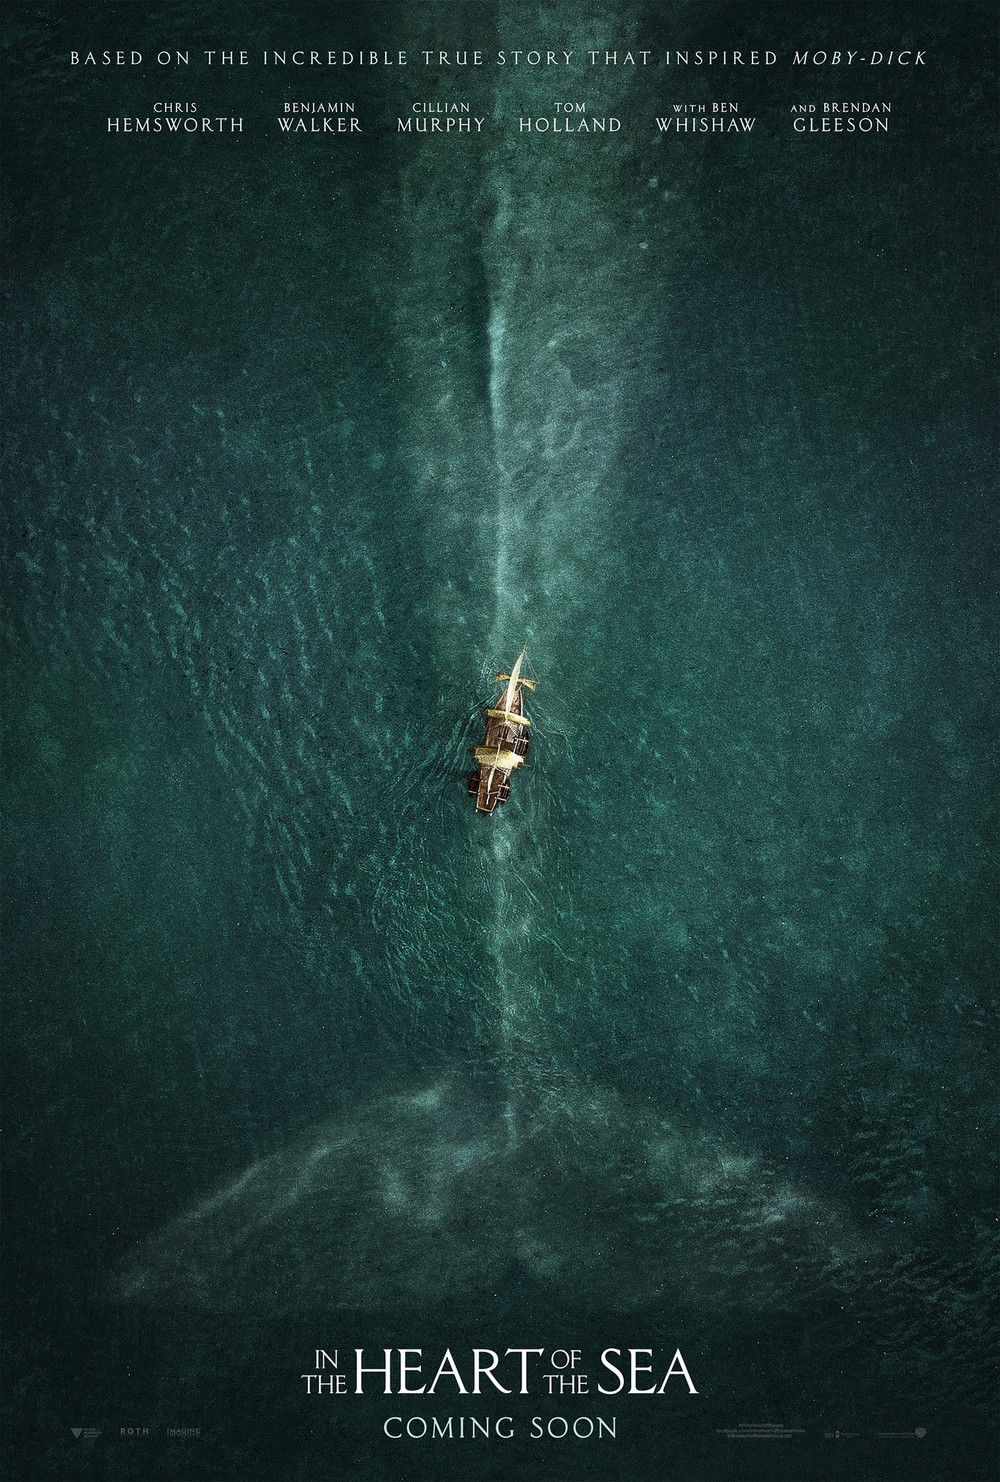 WOWZERS. This is how you make a teaser poster. The scale of the action happening here reminds me of last year's favorite, Godzilla. Our human protagonists are minuscule compared to the threat looming beneath the water that surrounds them on all sides. Safety not guaranteed.